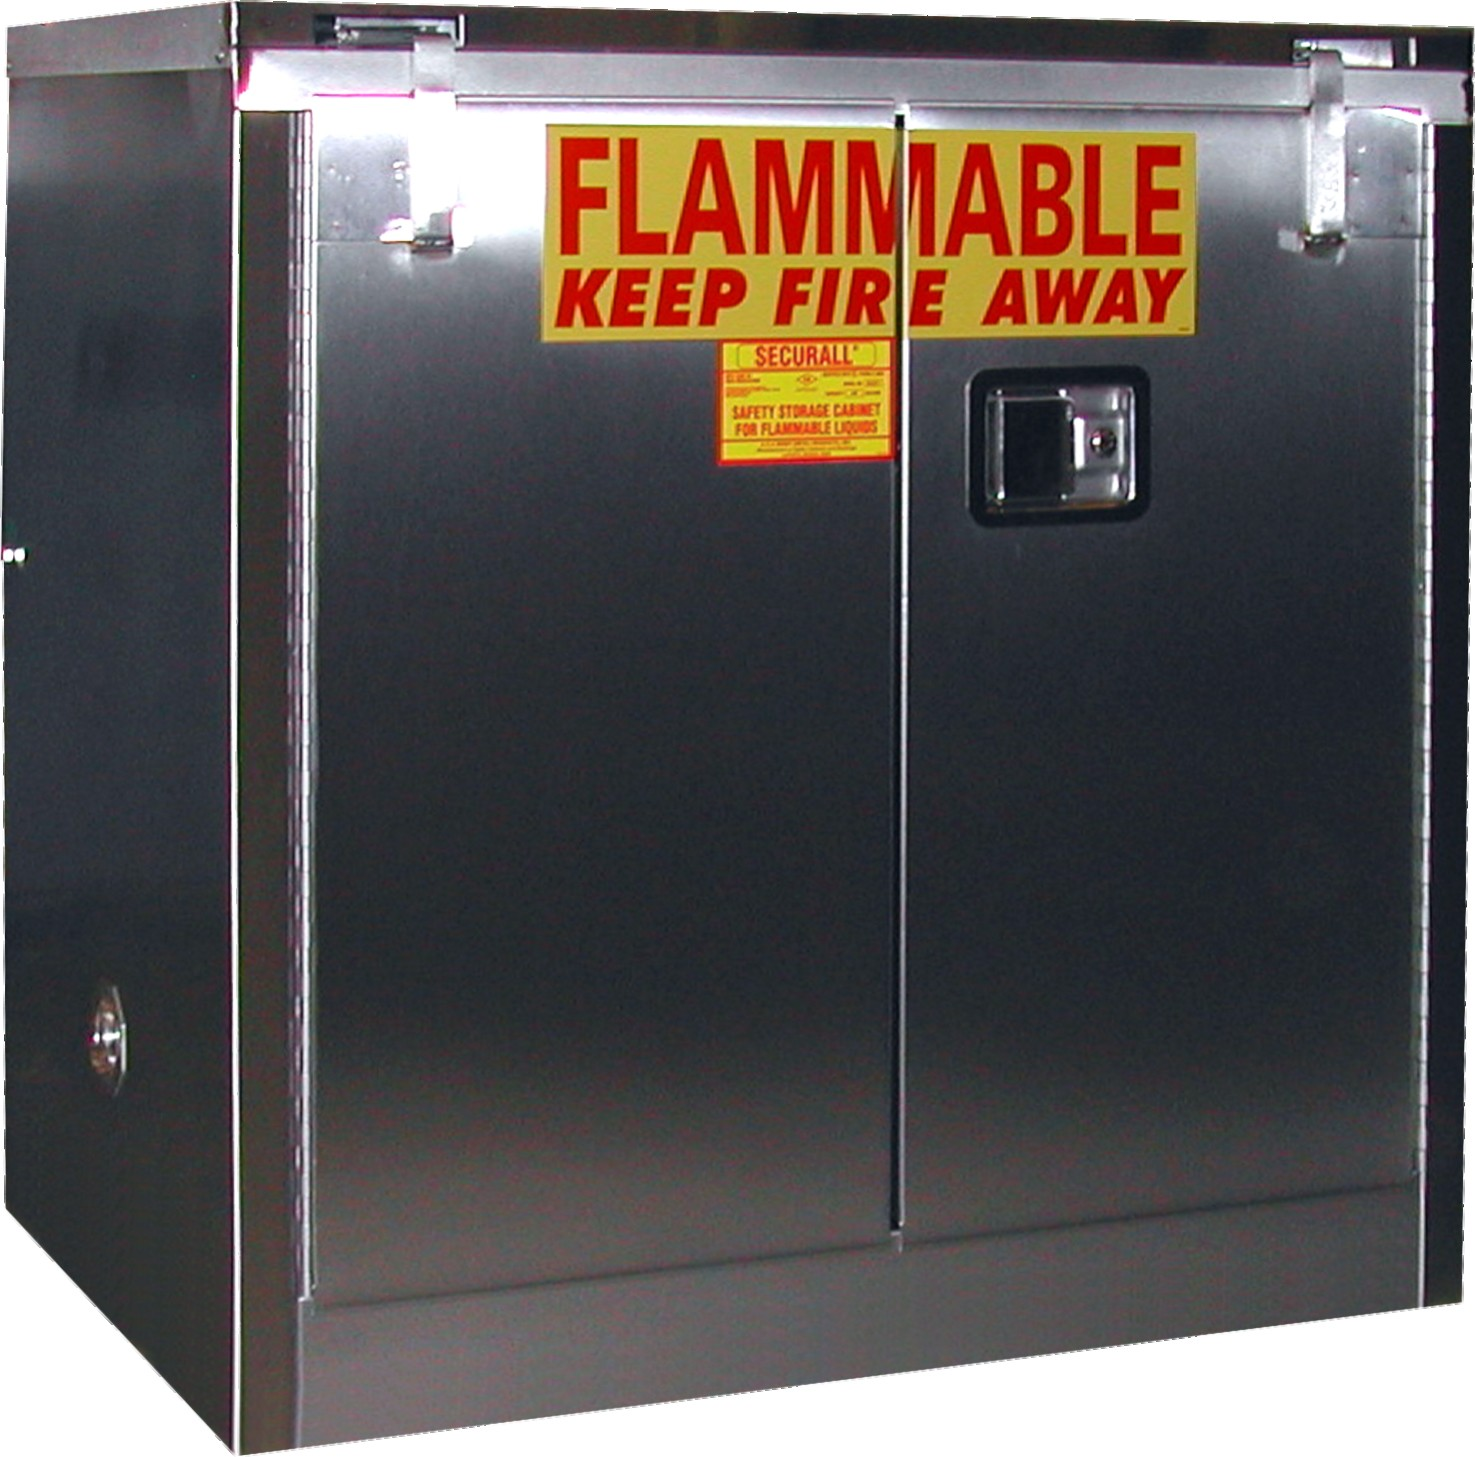 A131-SS - Stainless Steel Flammable Storage Cabinet - 30 Gal. Storage Capacity